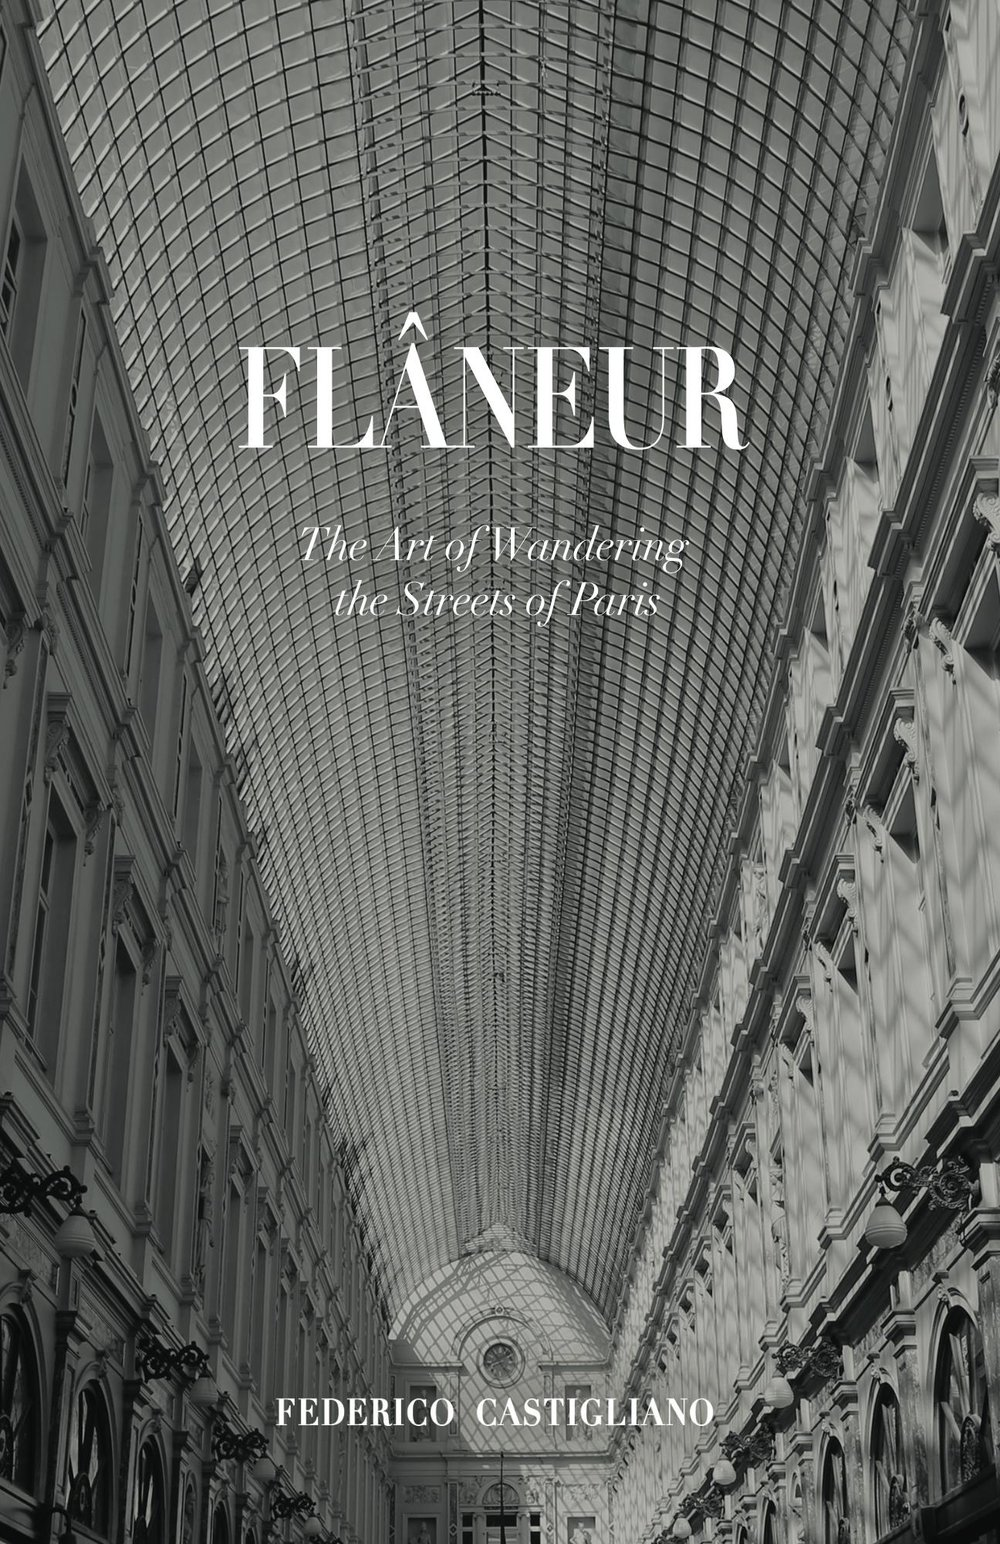 The Bible of flâneurs, a must-read for travelers and Paris lovers -